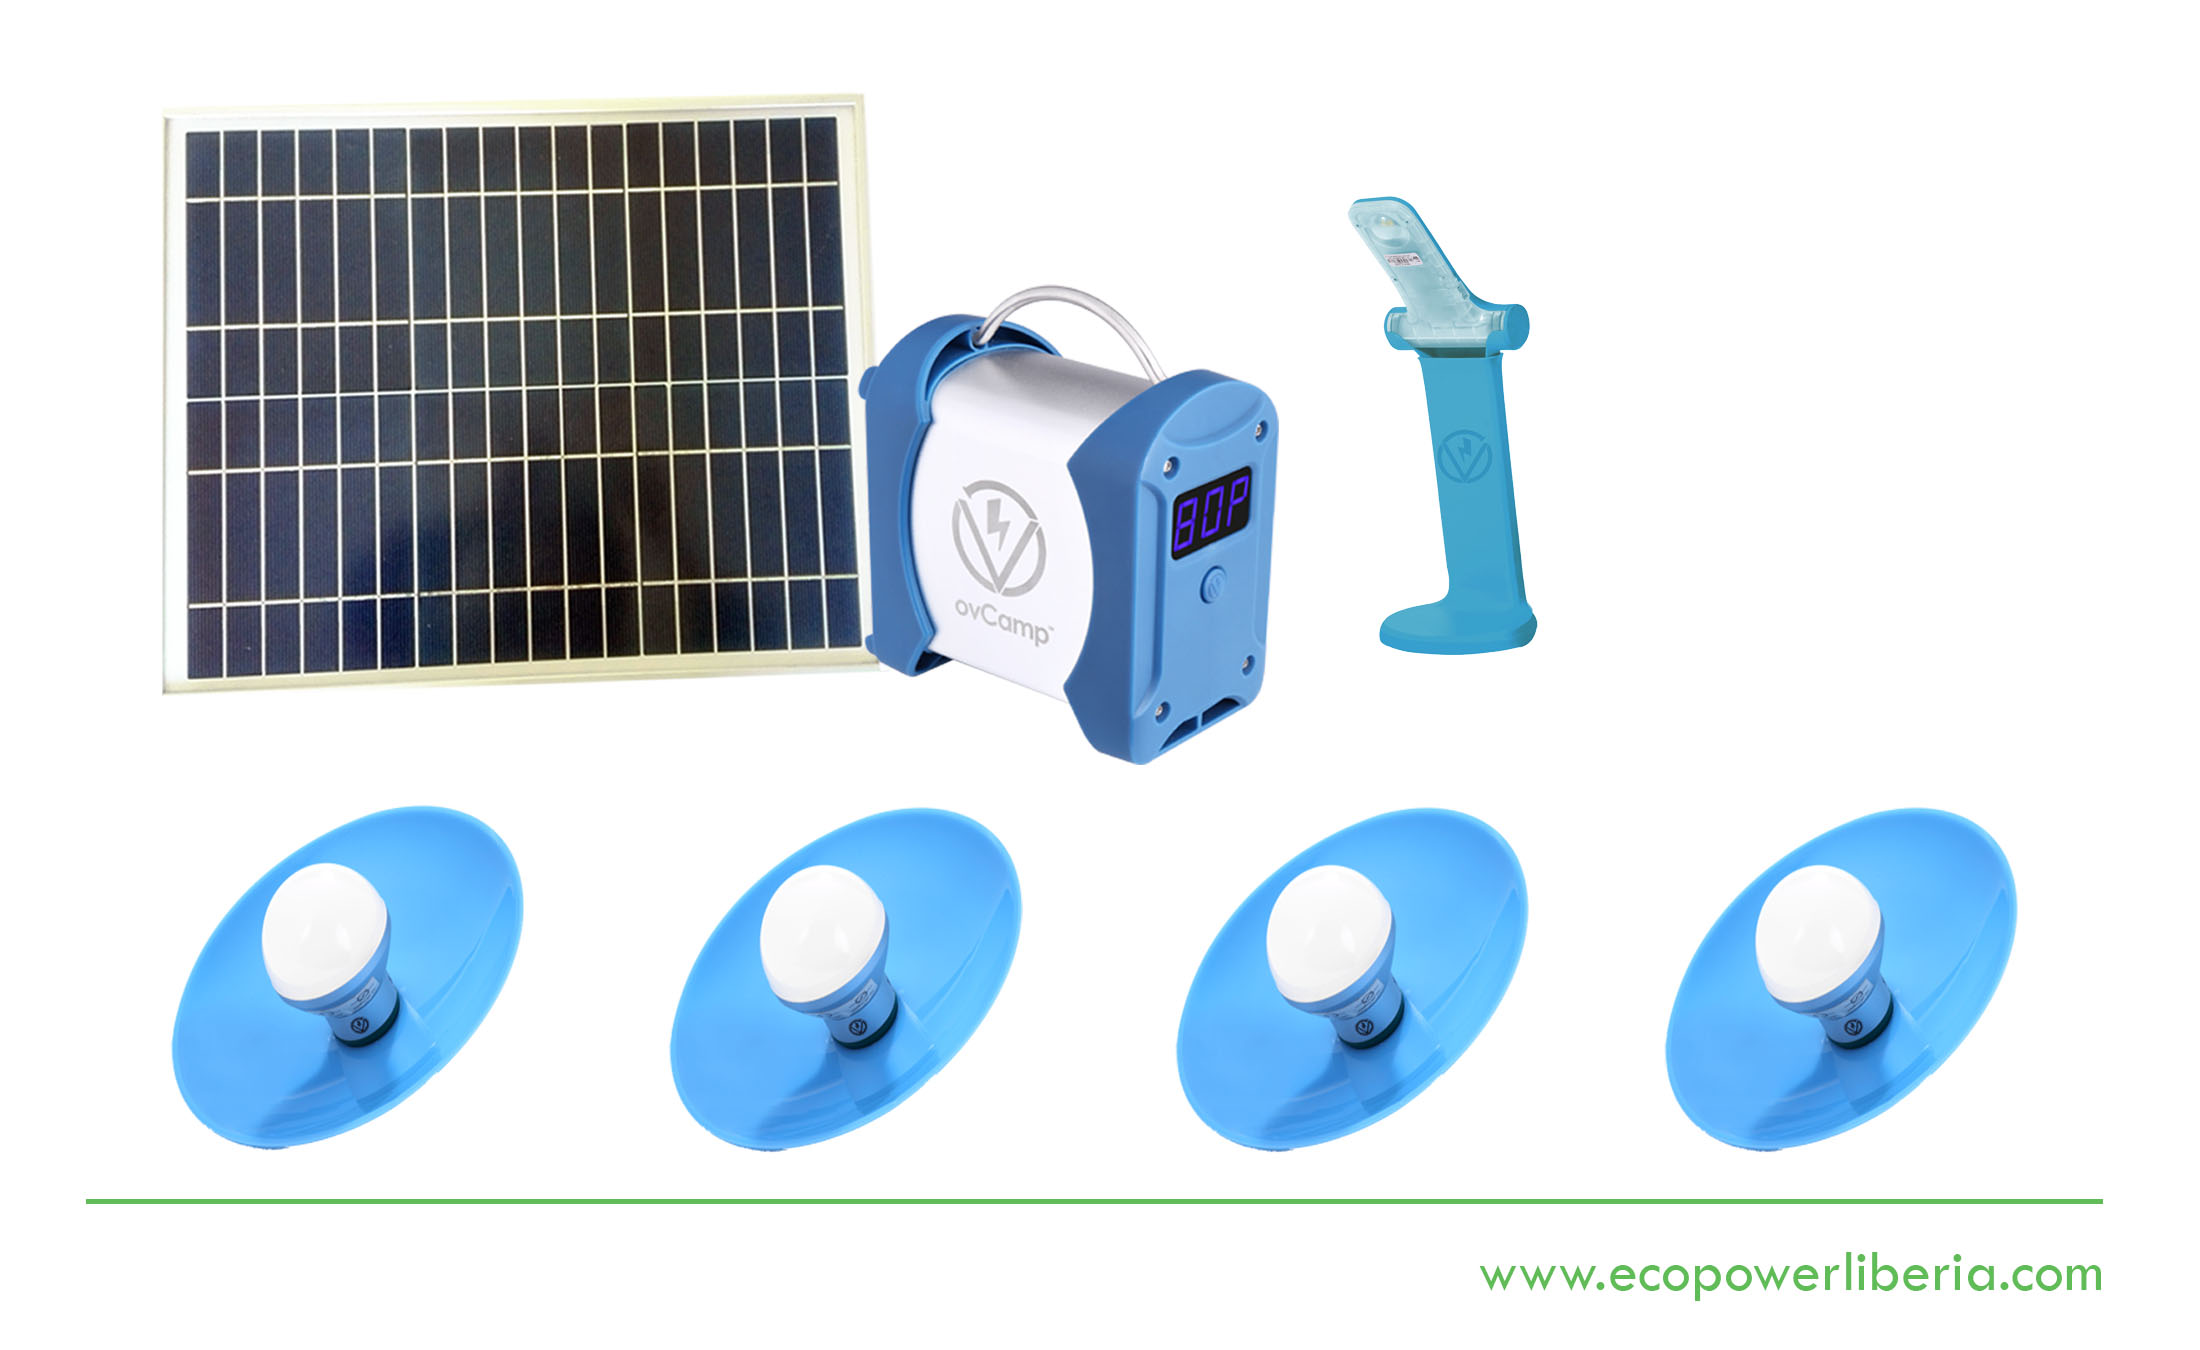 Package 4Eco